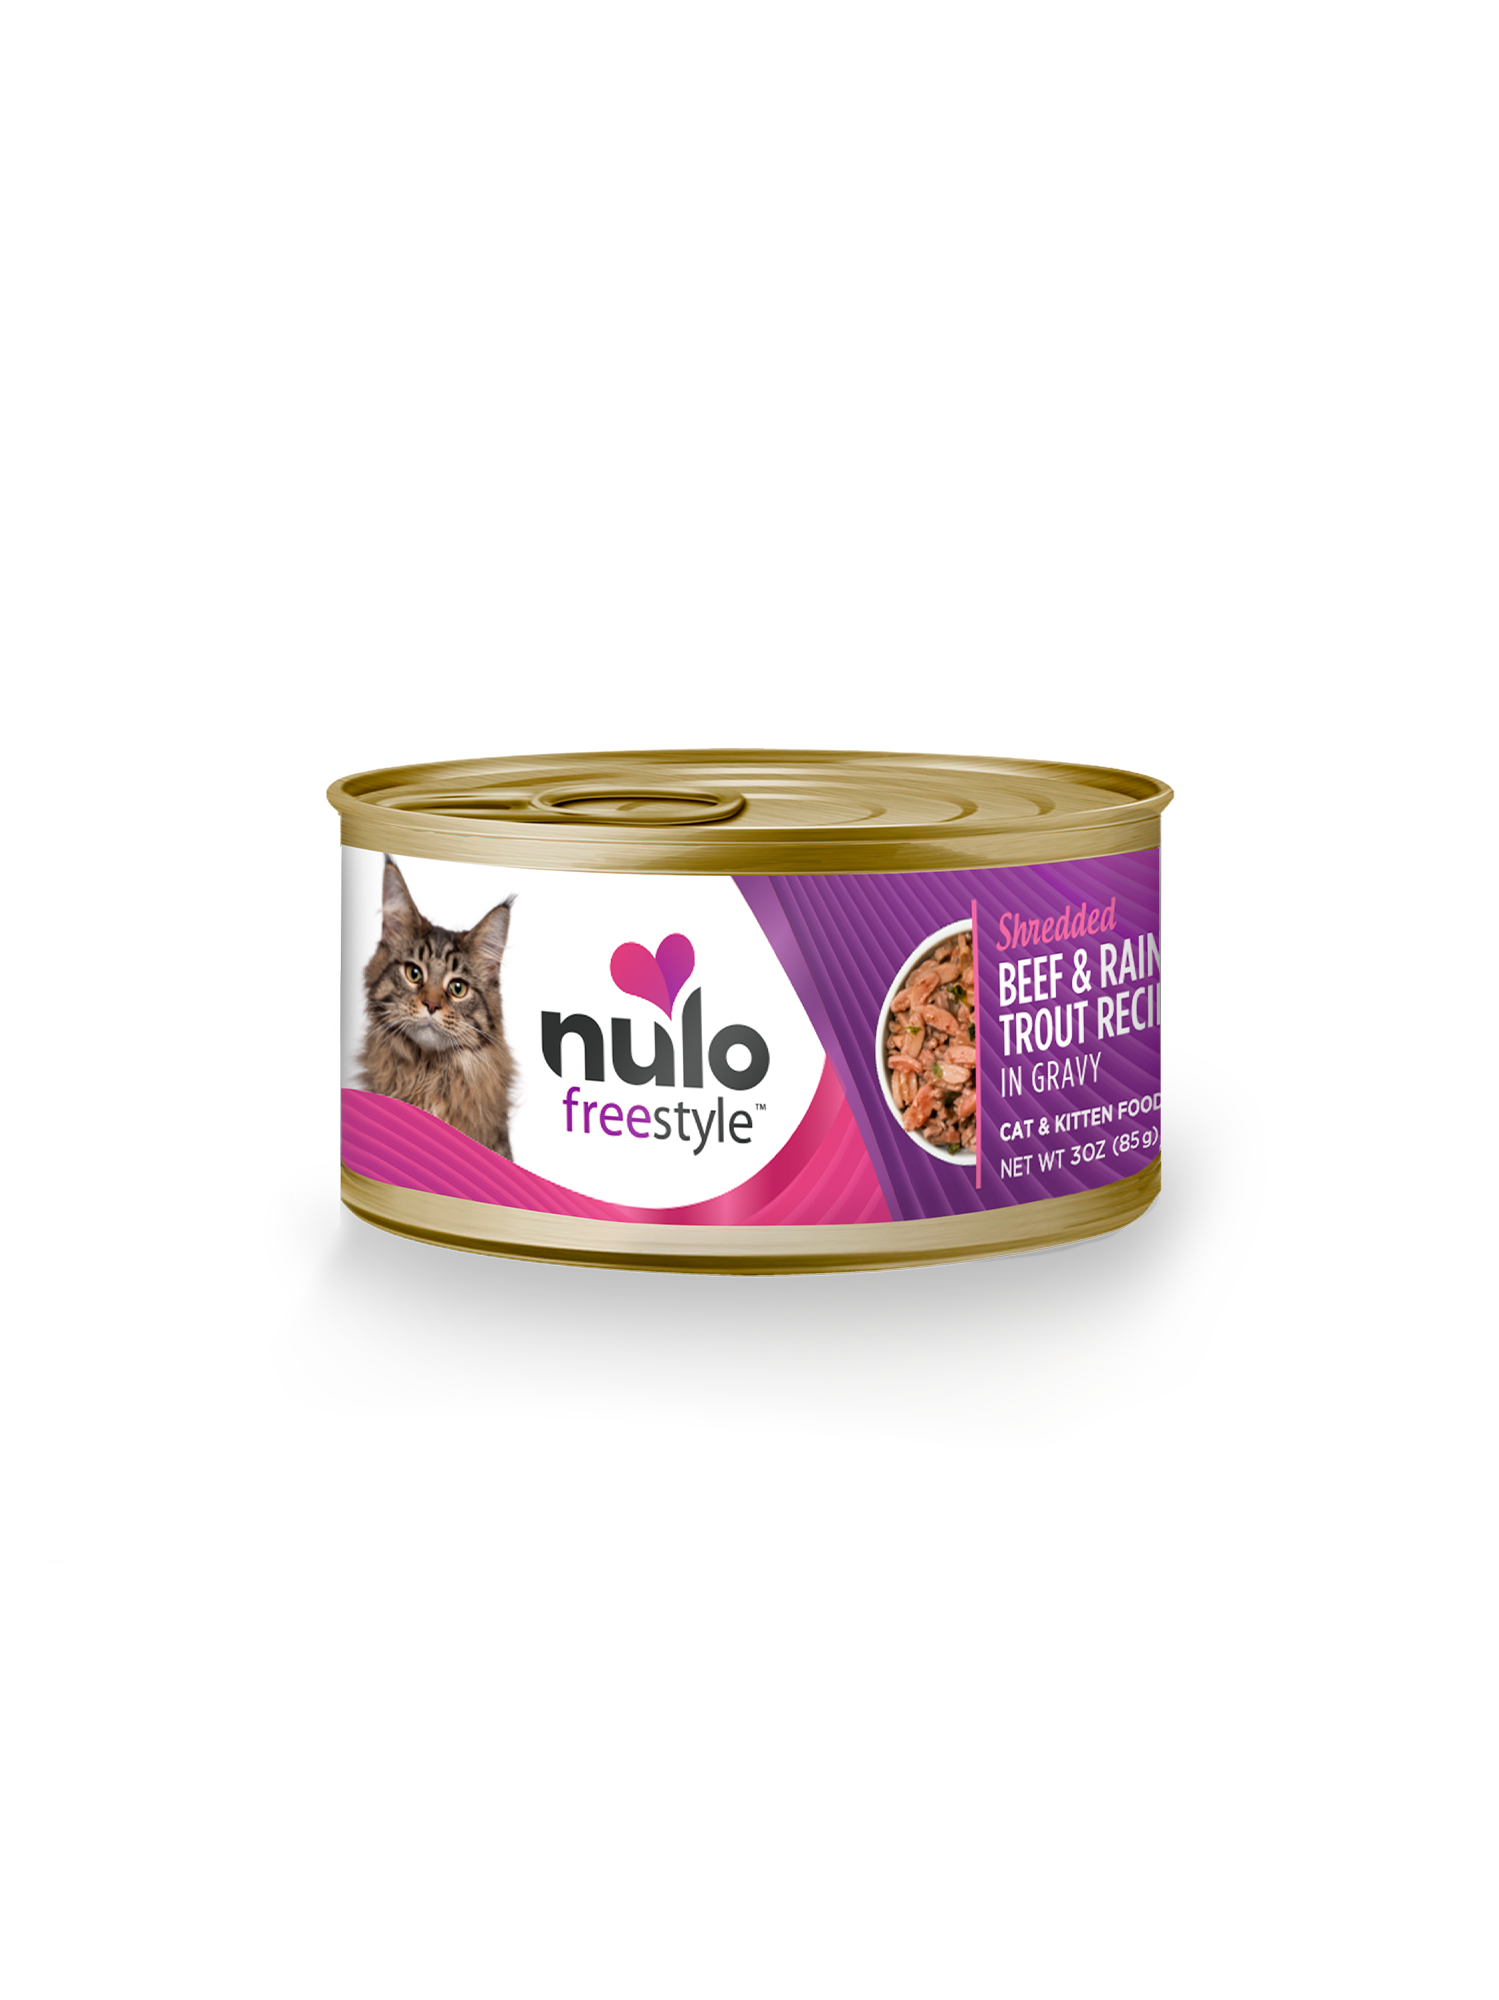 Nulo Nulo Freestyle Shredded Beef & Rainbow Trout Wet Cat Food 3oz